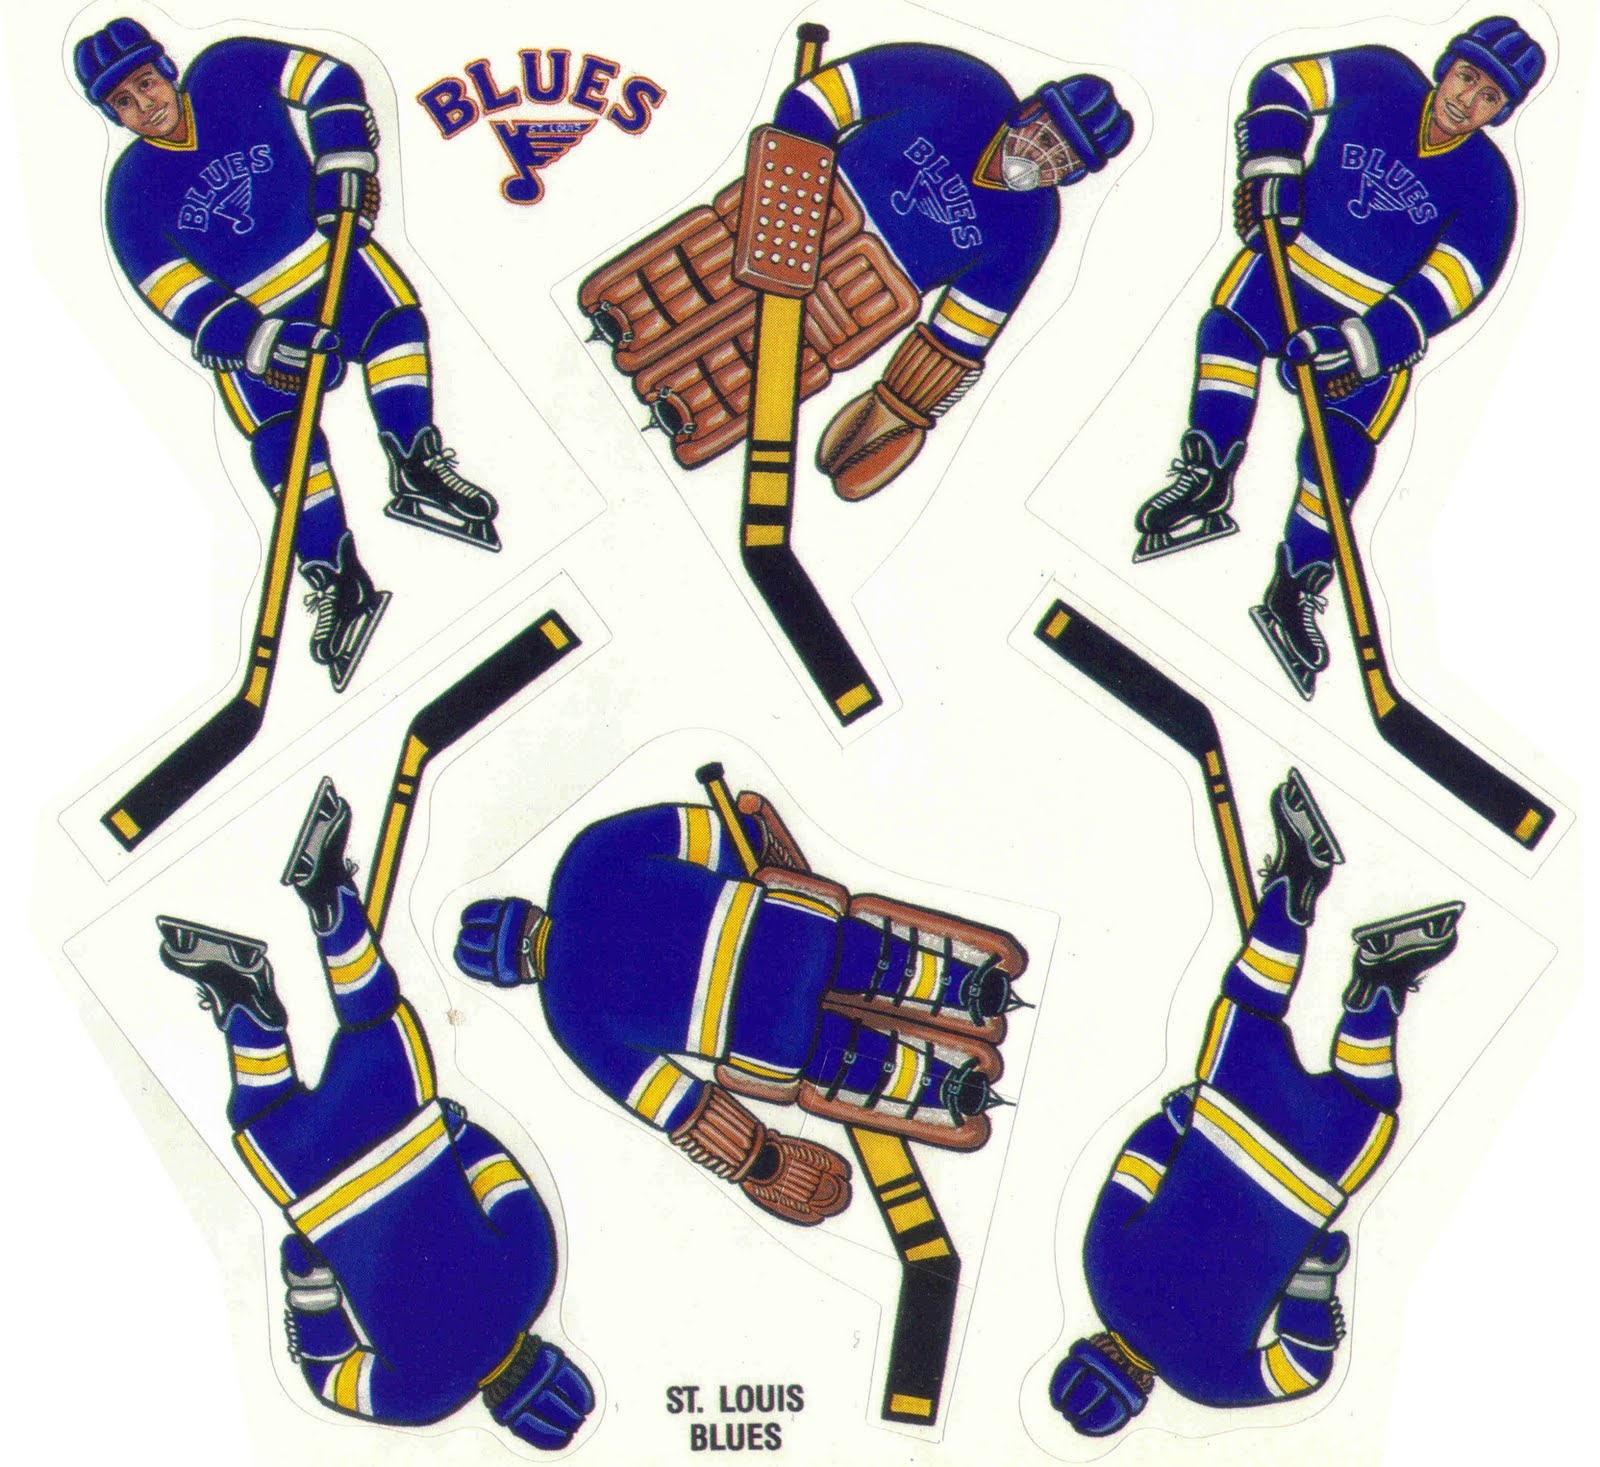 image about St Louis Blues Printable Schedule titled CD Lifestuff: Coleco Printable Hockey Gamers: Element 17: St